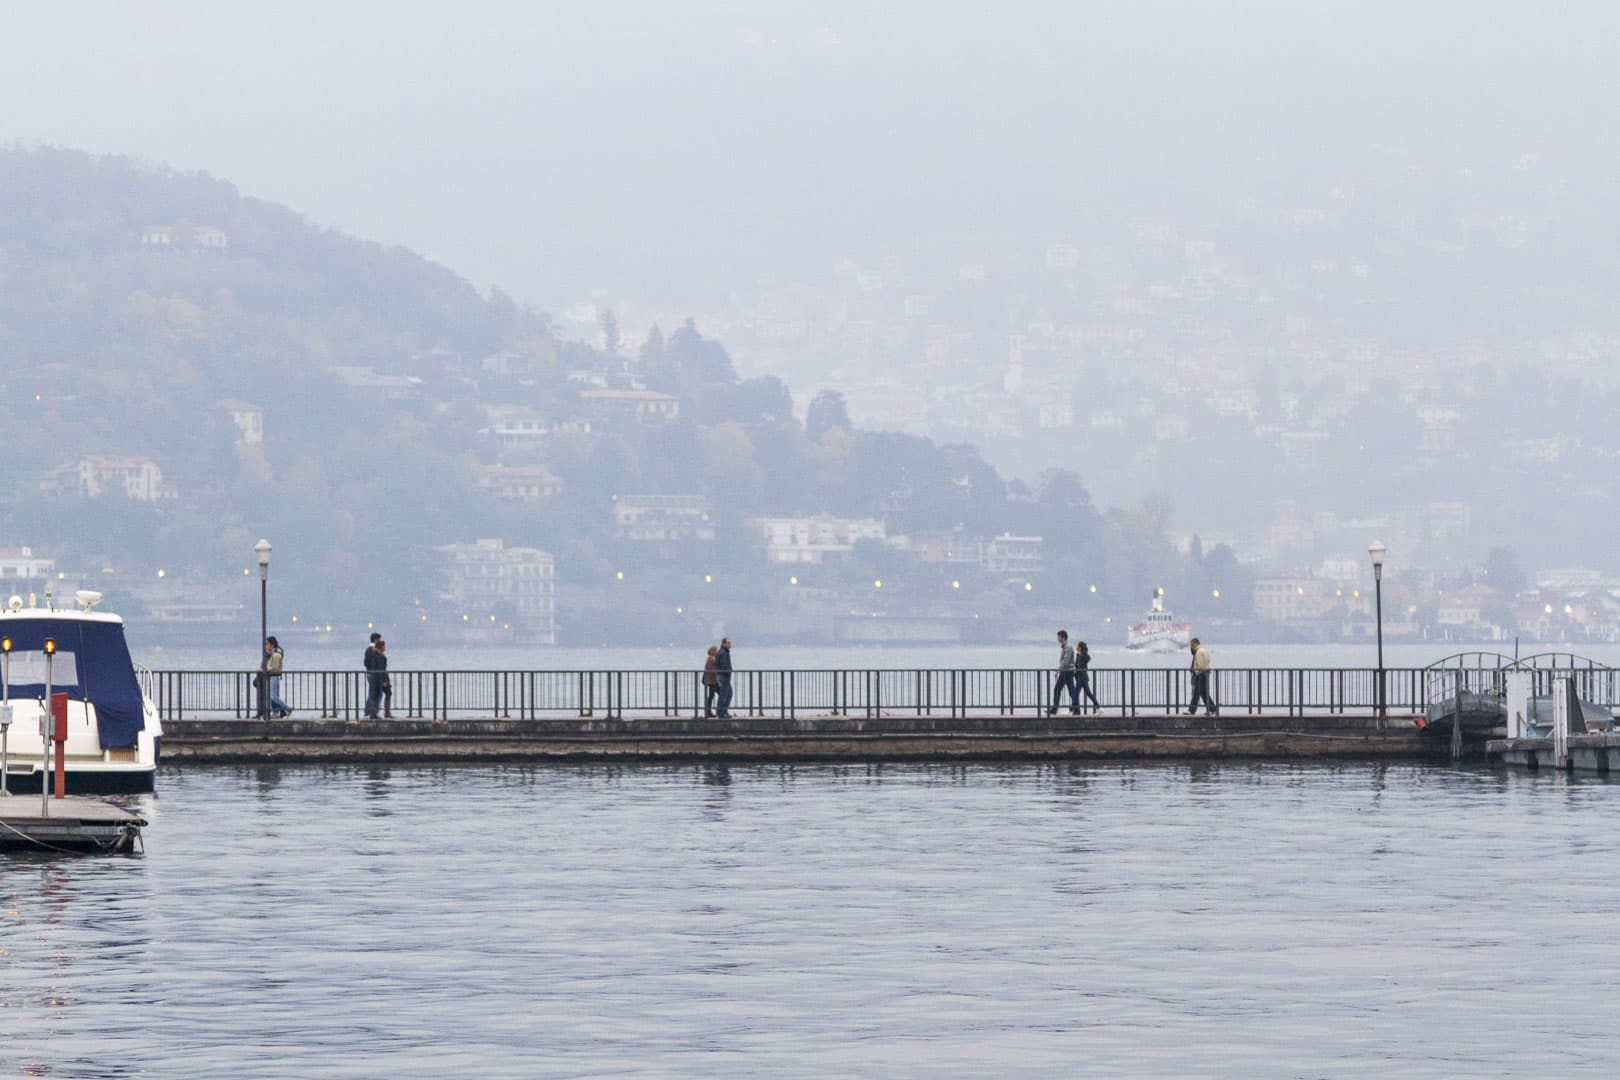 People are Crossing the Bridge Over the Como Lake in Italy-